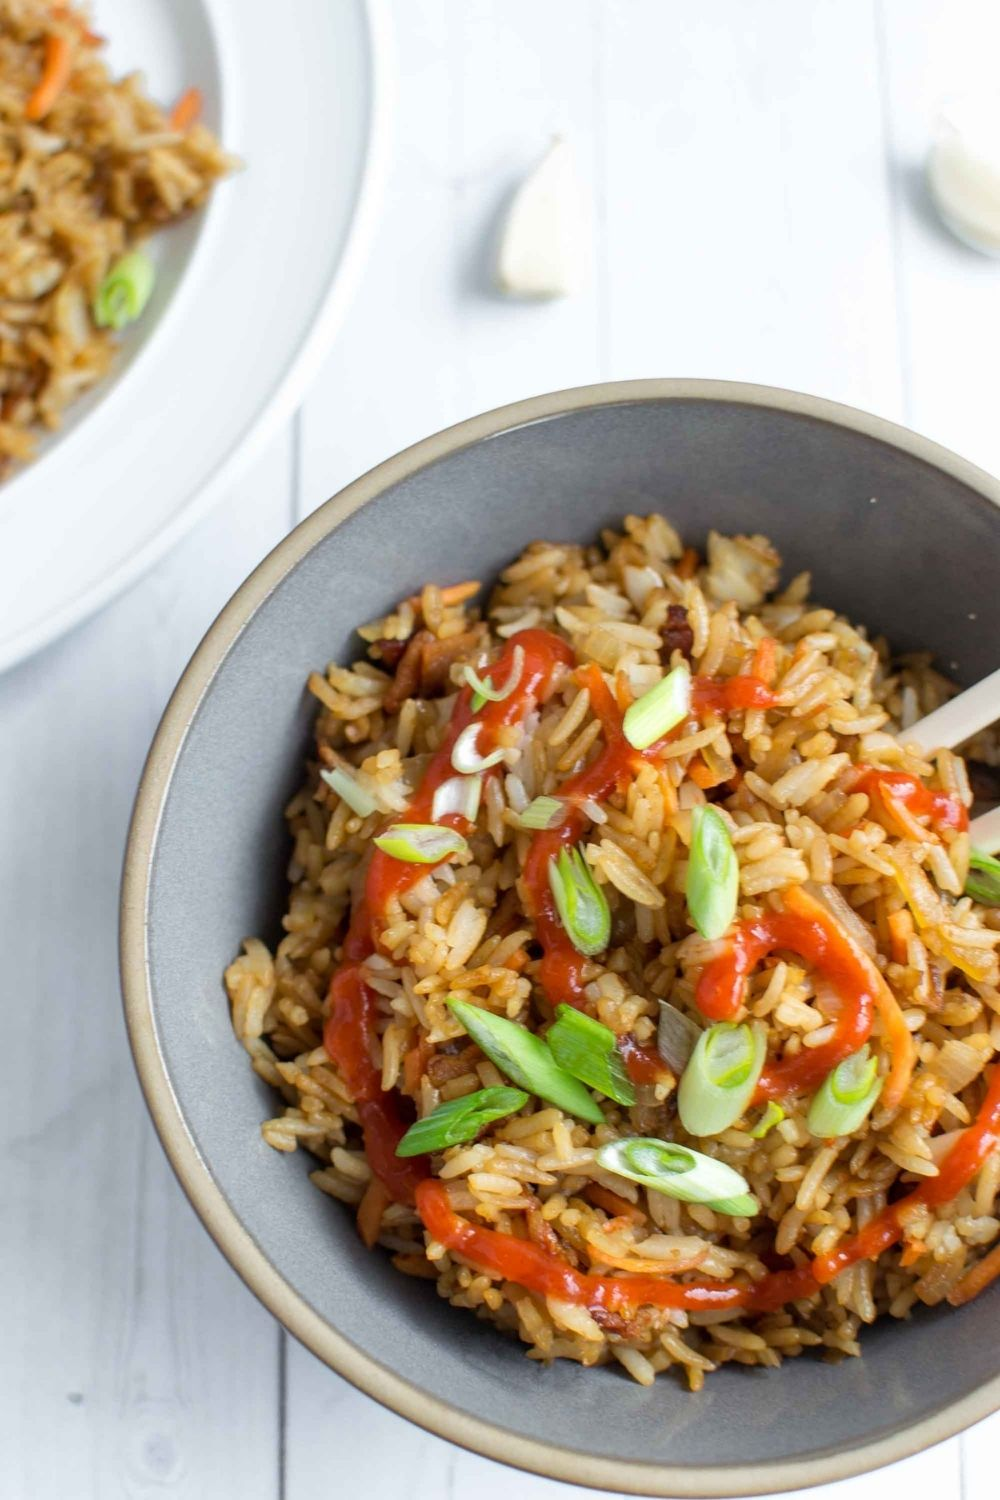 fried rice in a bowl with srirachs and scallions